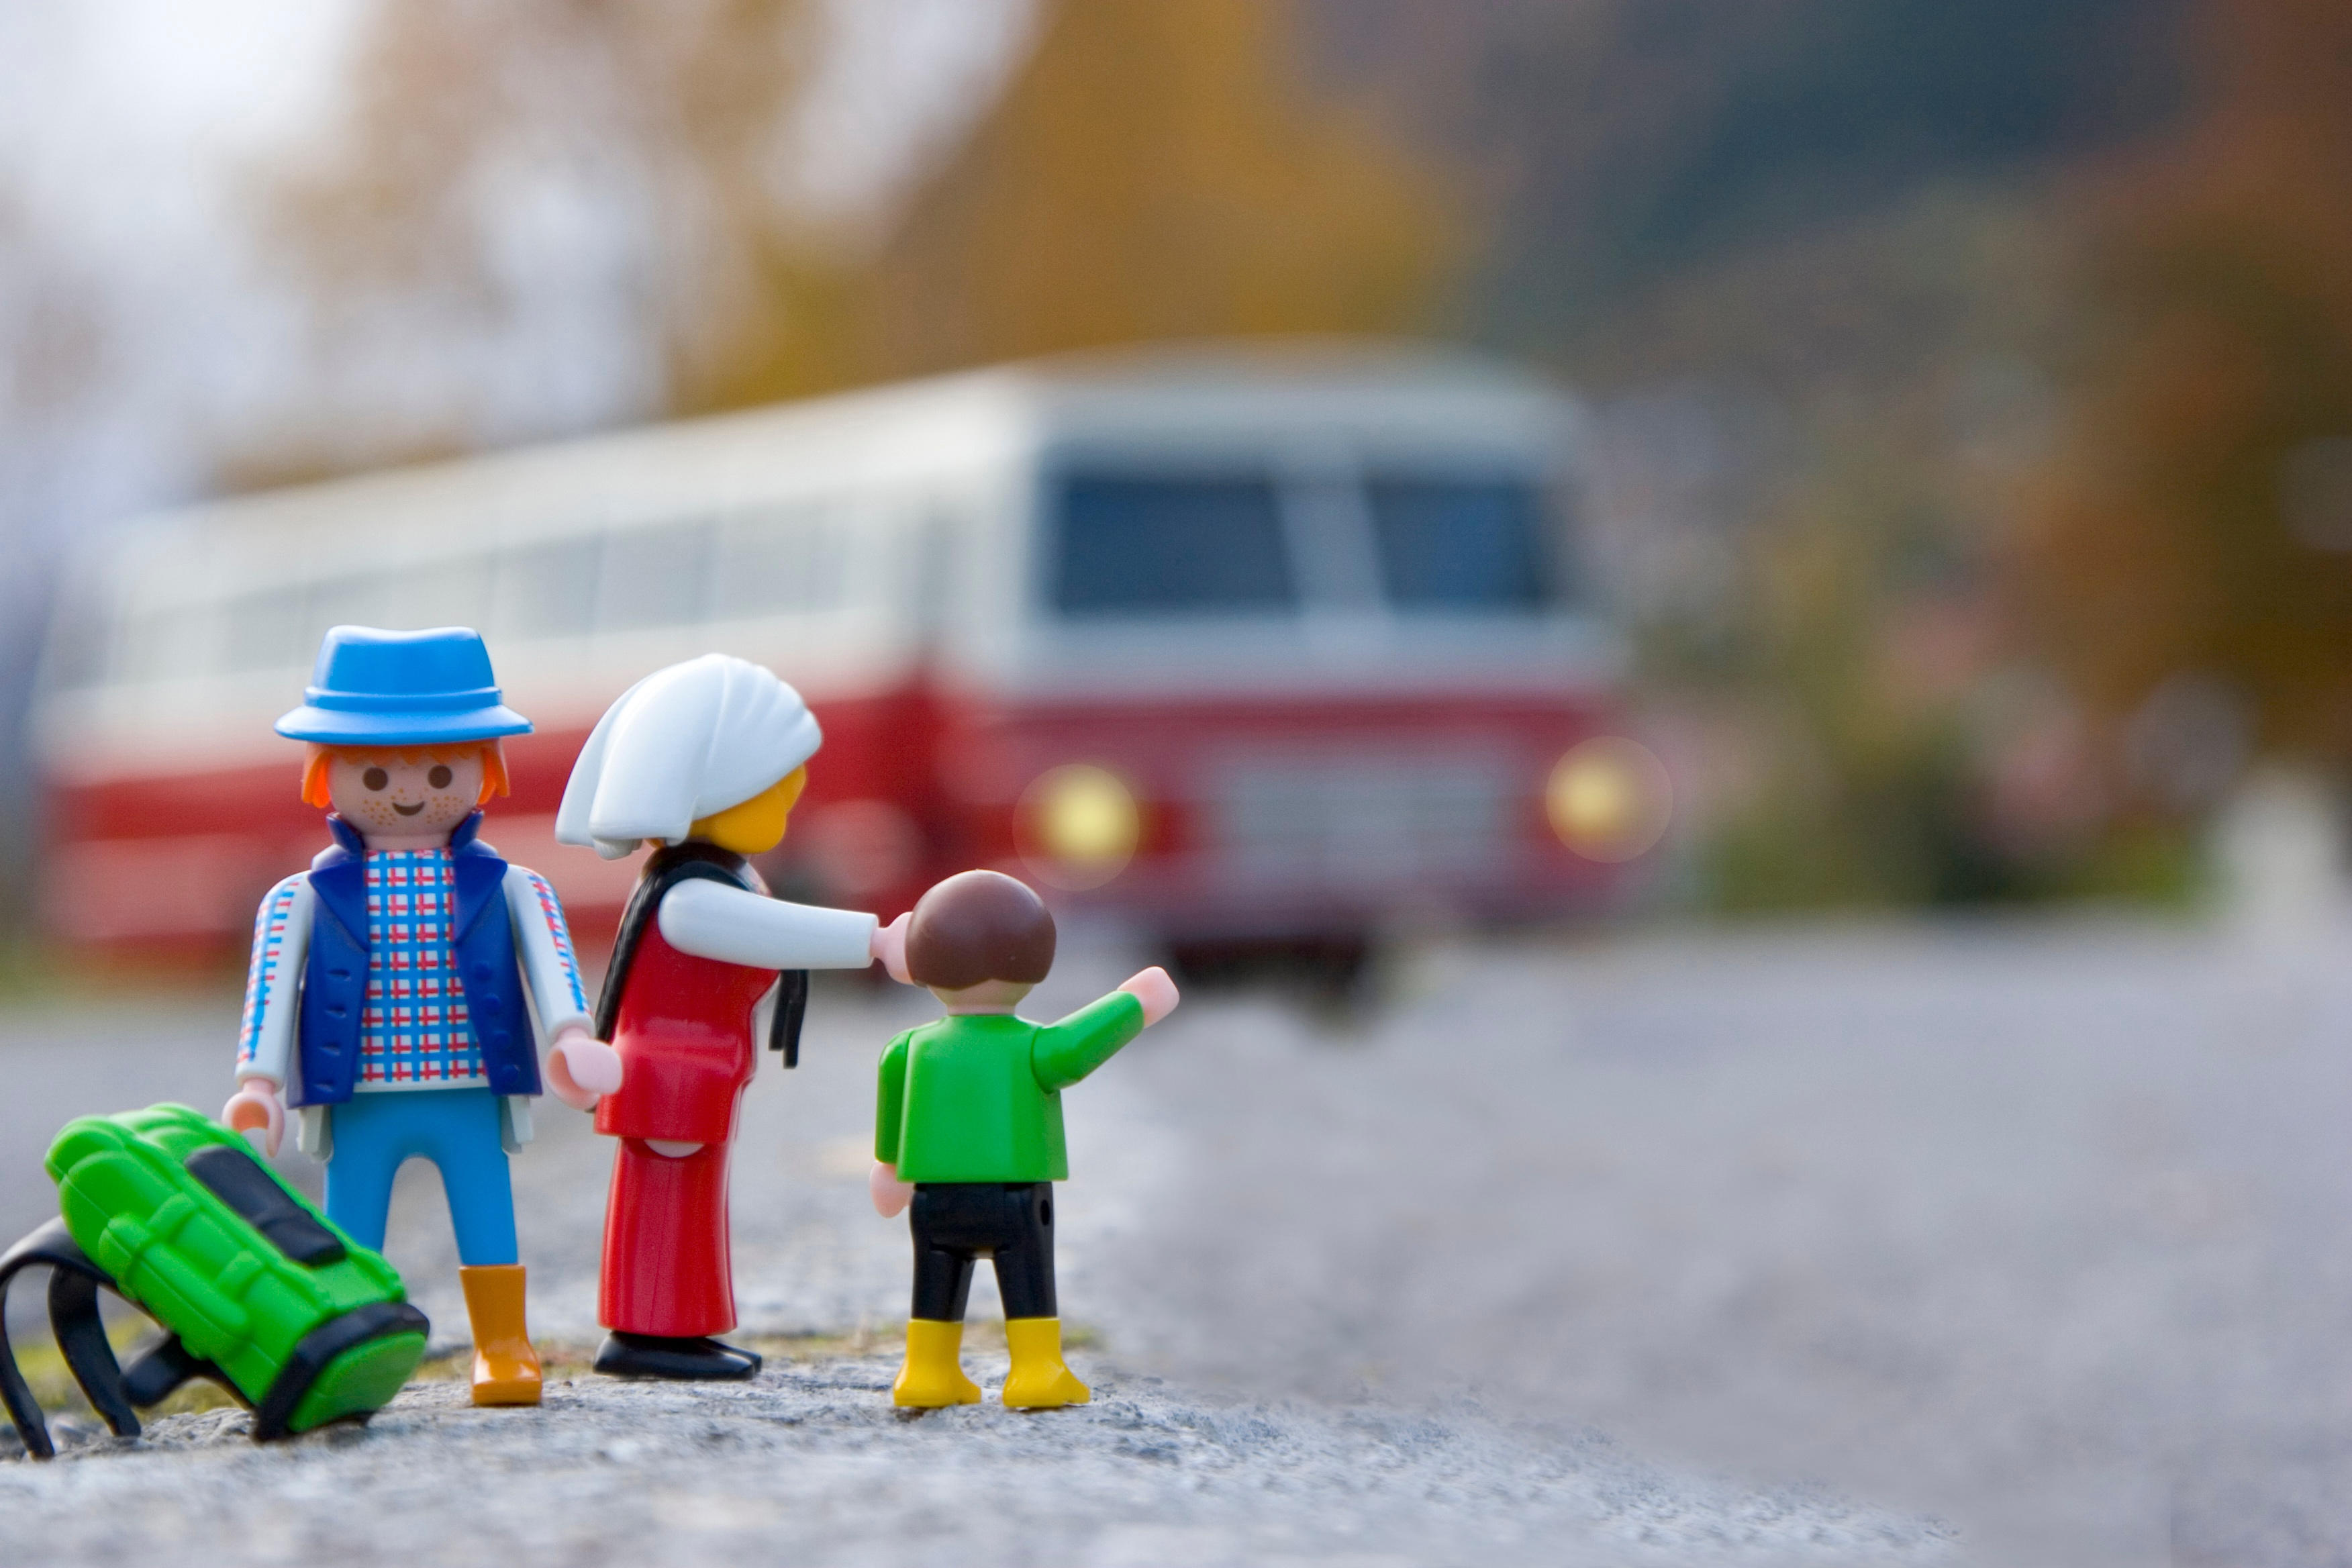 Lego Family Waves at Bus